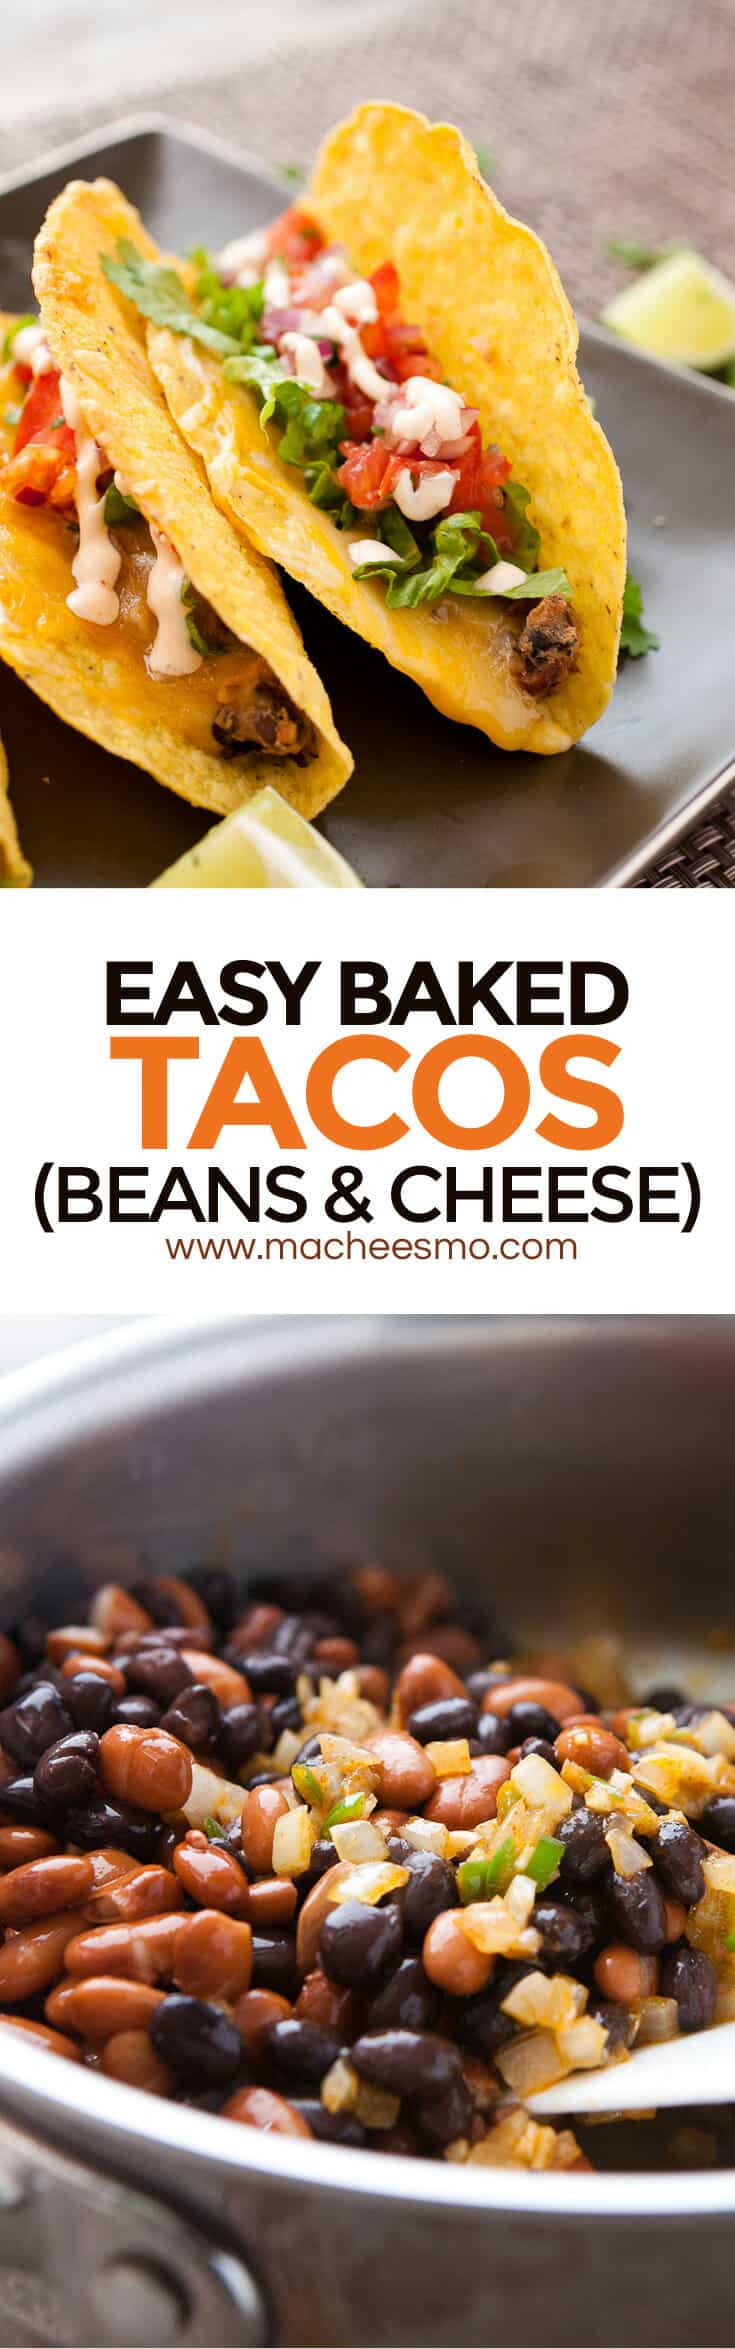 Easy Bean and Cheese Baked Tacos: Baking your tacos ensure the cheese gets super-melty and the filling stays hot! I like to make my own mashed bean mixture for these tacos and top them with a quick pico de gallo and sour cream sauce! Read the post for my THREE TACO TIPS for success! | macheesmo.com